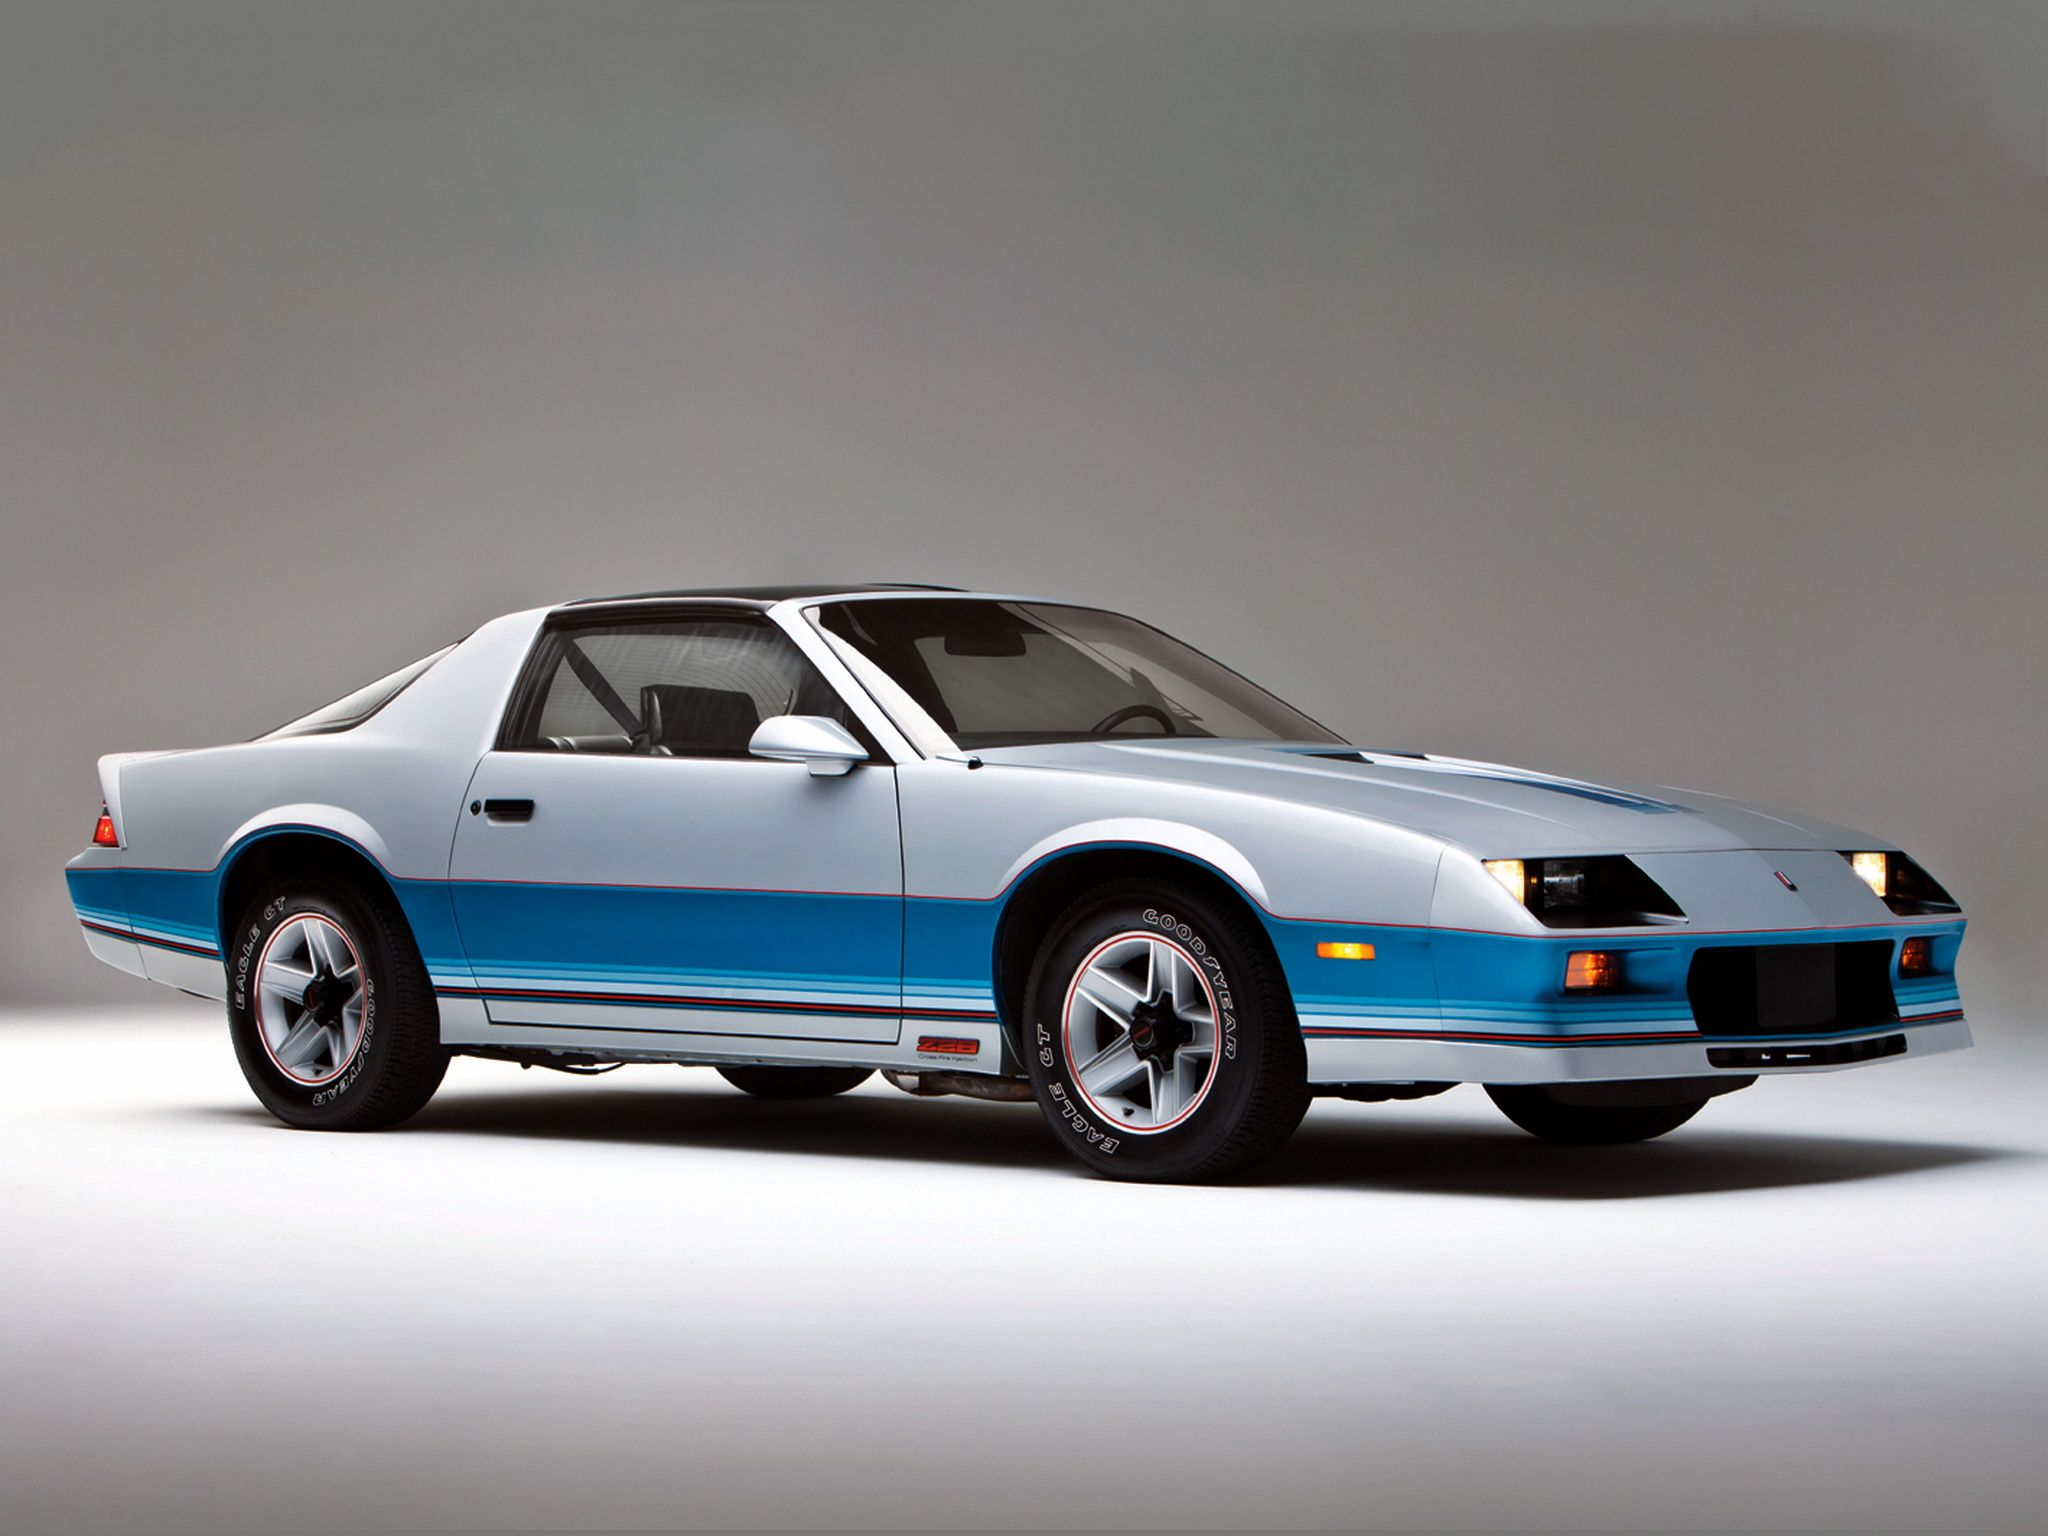 My old car! 1982 Chevrolet Camaro Z28 Pace Car - how I learned the ...